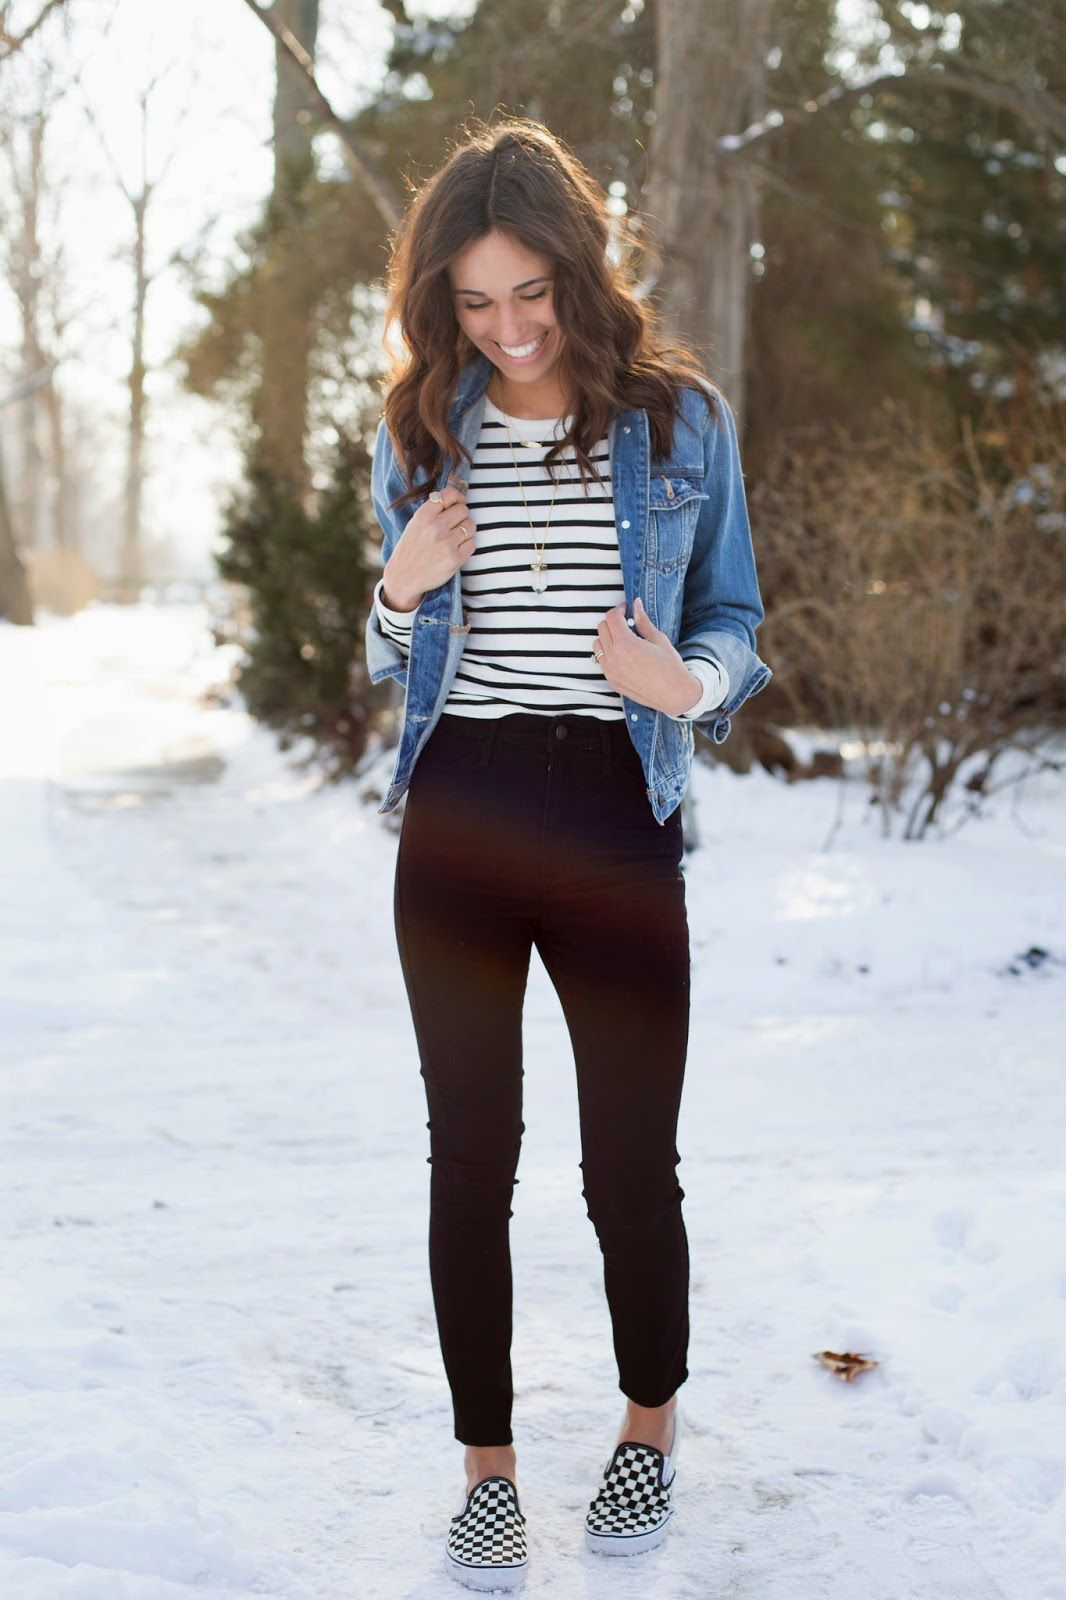 Casual outfit denim jacket vans stripe shirt | fashion | Pinterest | Denim jackets Vans and Clothes